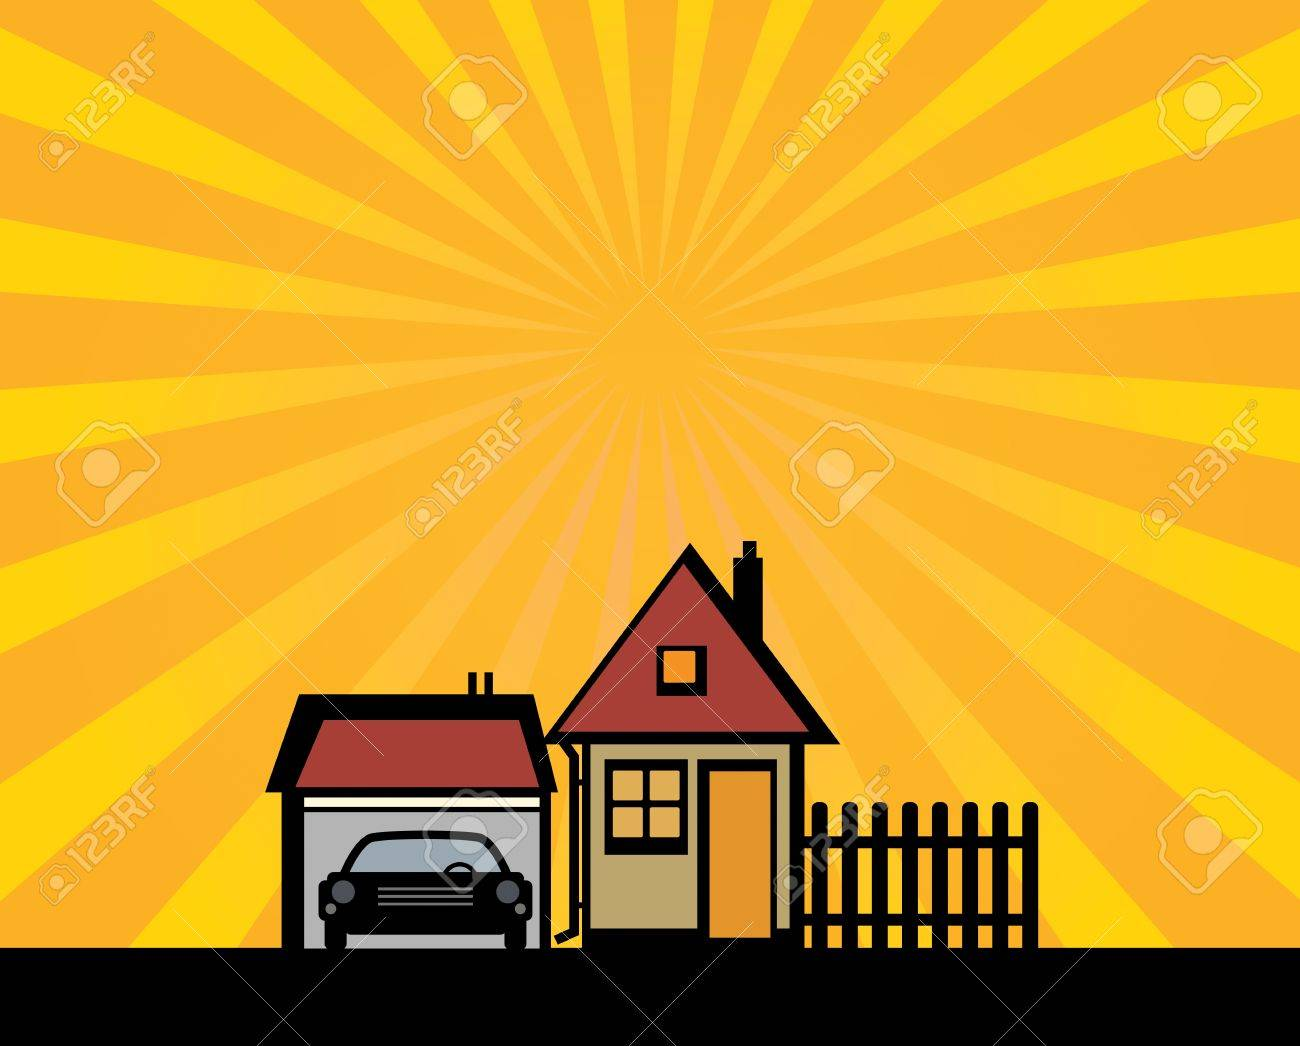 Houses and garage silhouette on abstract background Stock Vector - 22150850